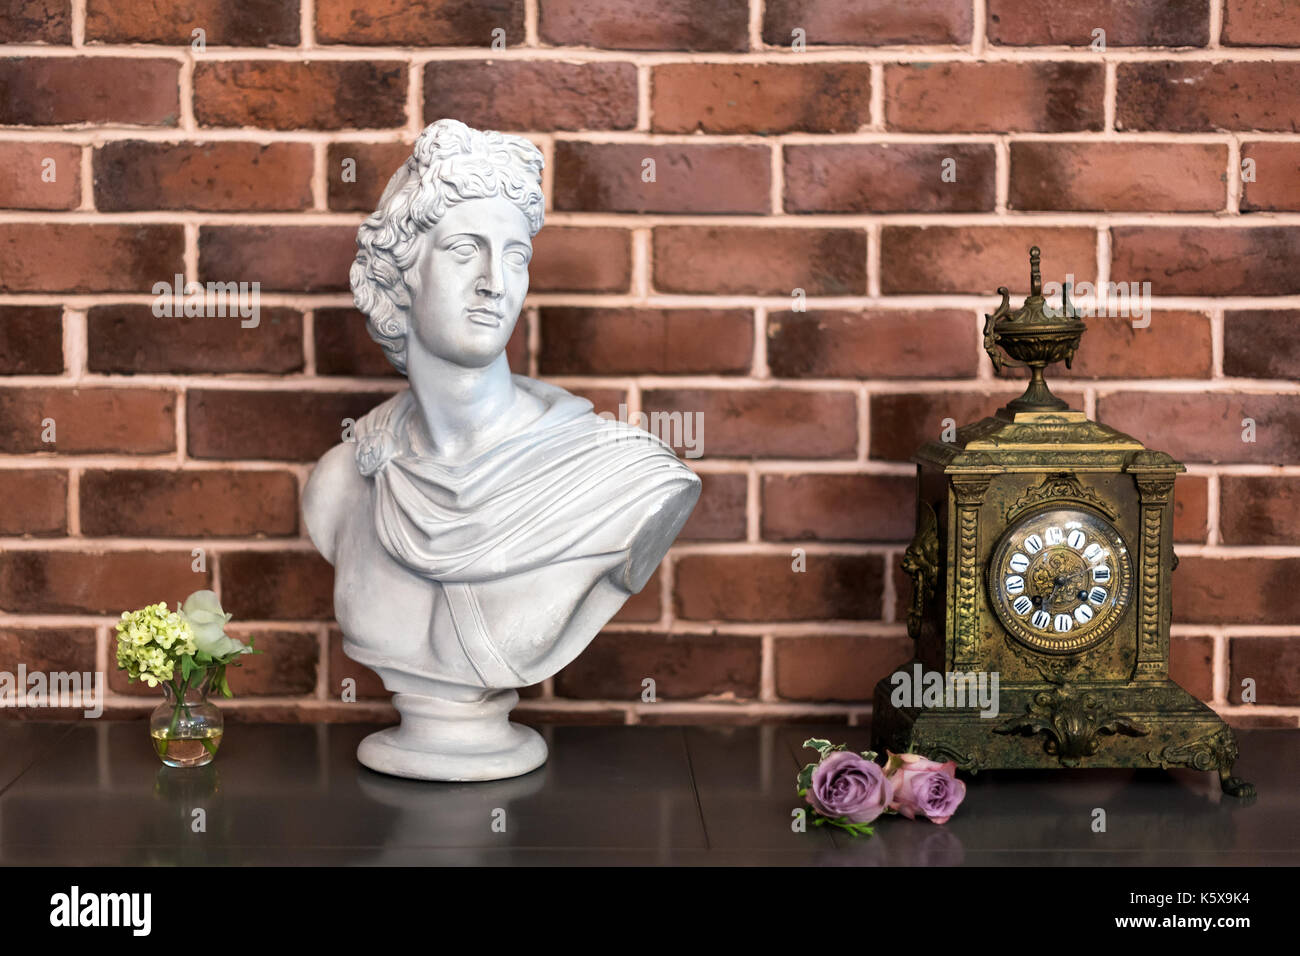 White plaster bust sculpture portrait of a young man and old clock on the table, details of luxury interior in classic style. - Stock Image